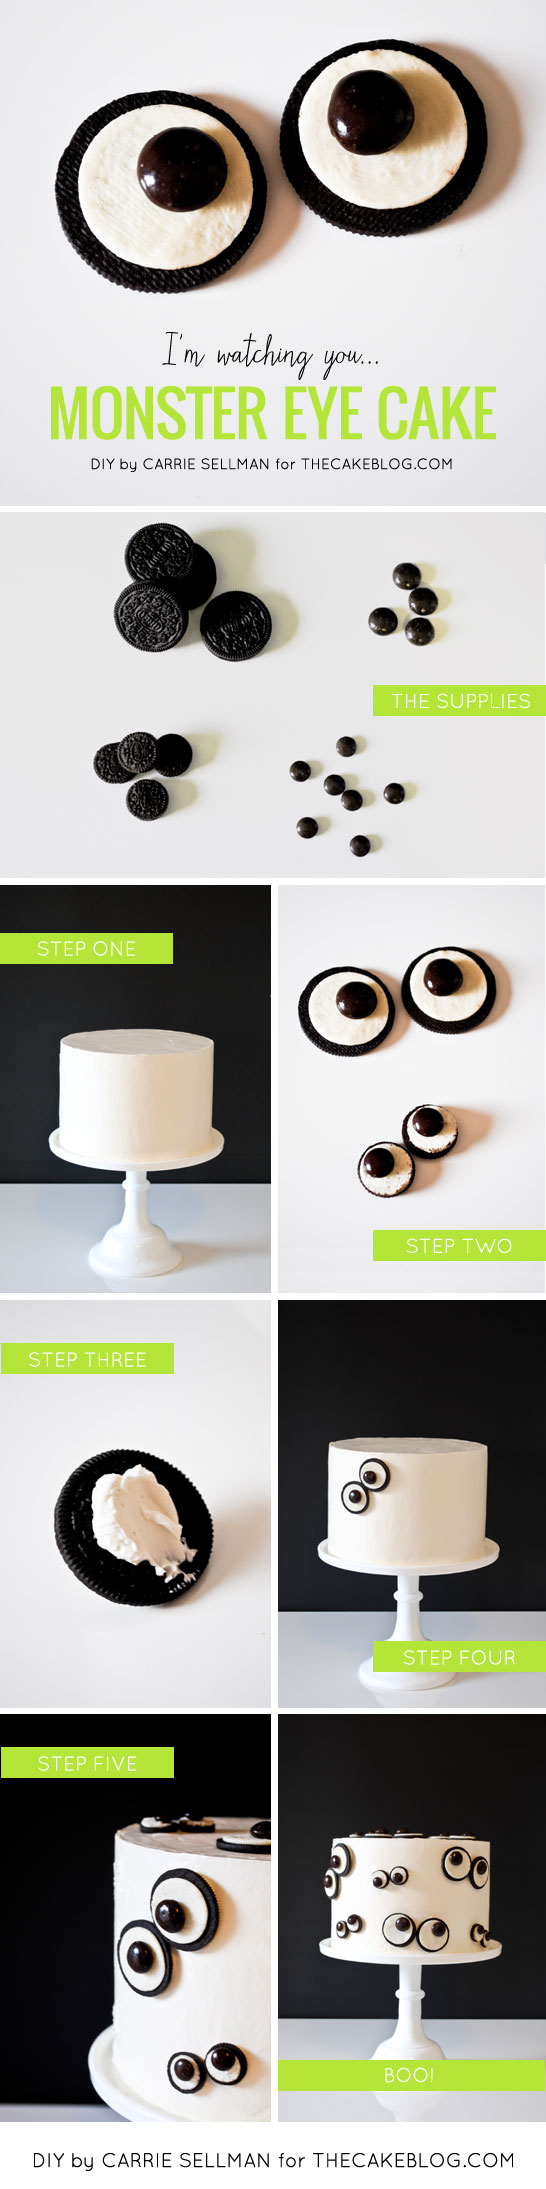 diy monster eye cake